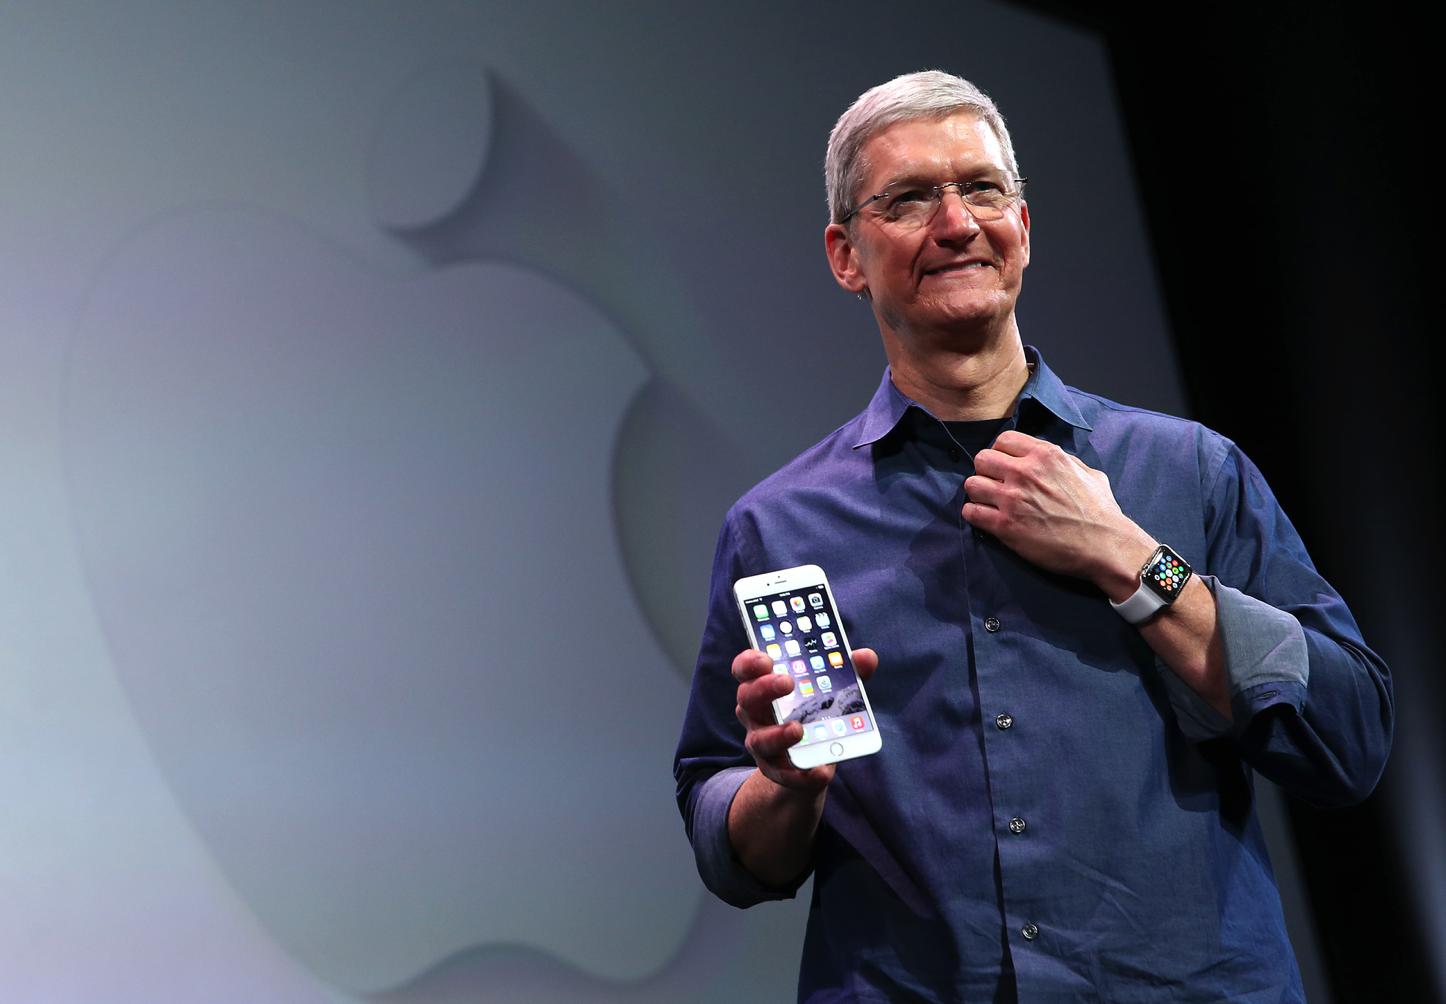 Tim Cook With Apple Watch